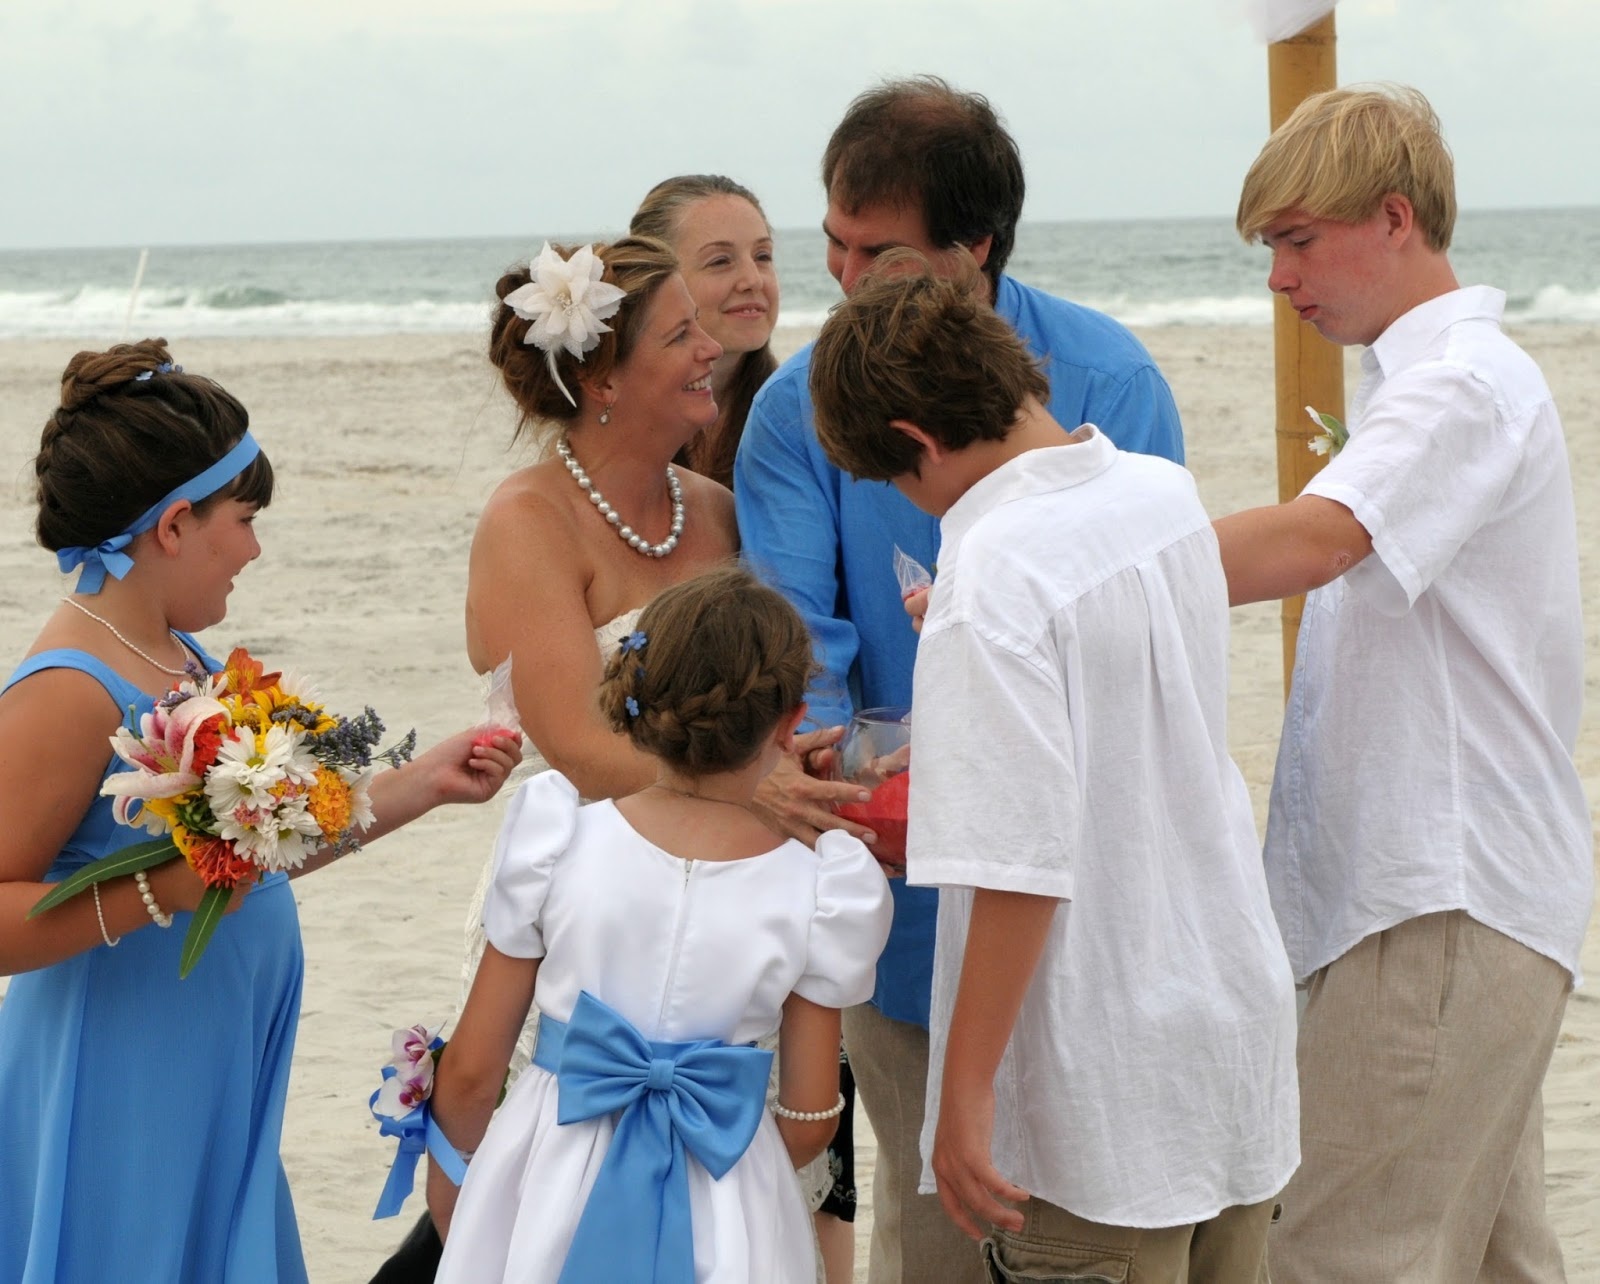 Family Blending Sand Bottles And Jars For Weddings